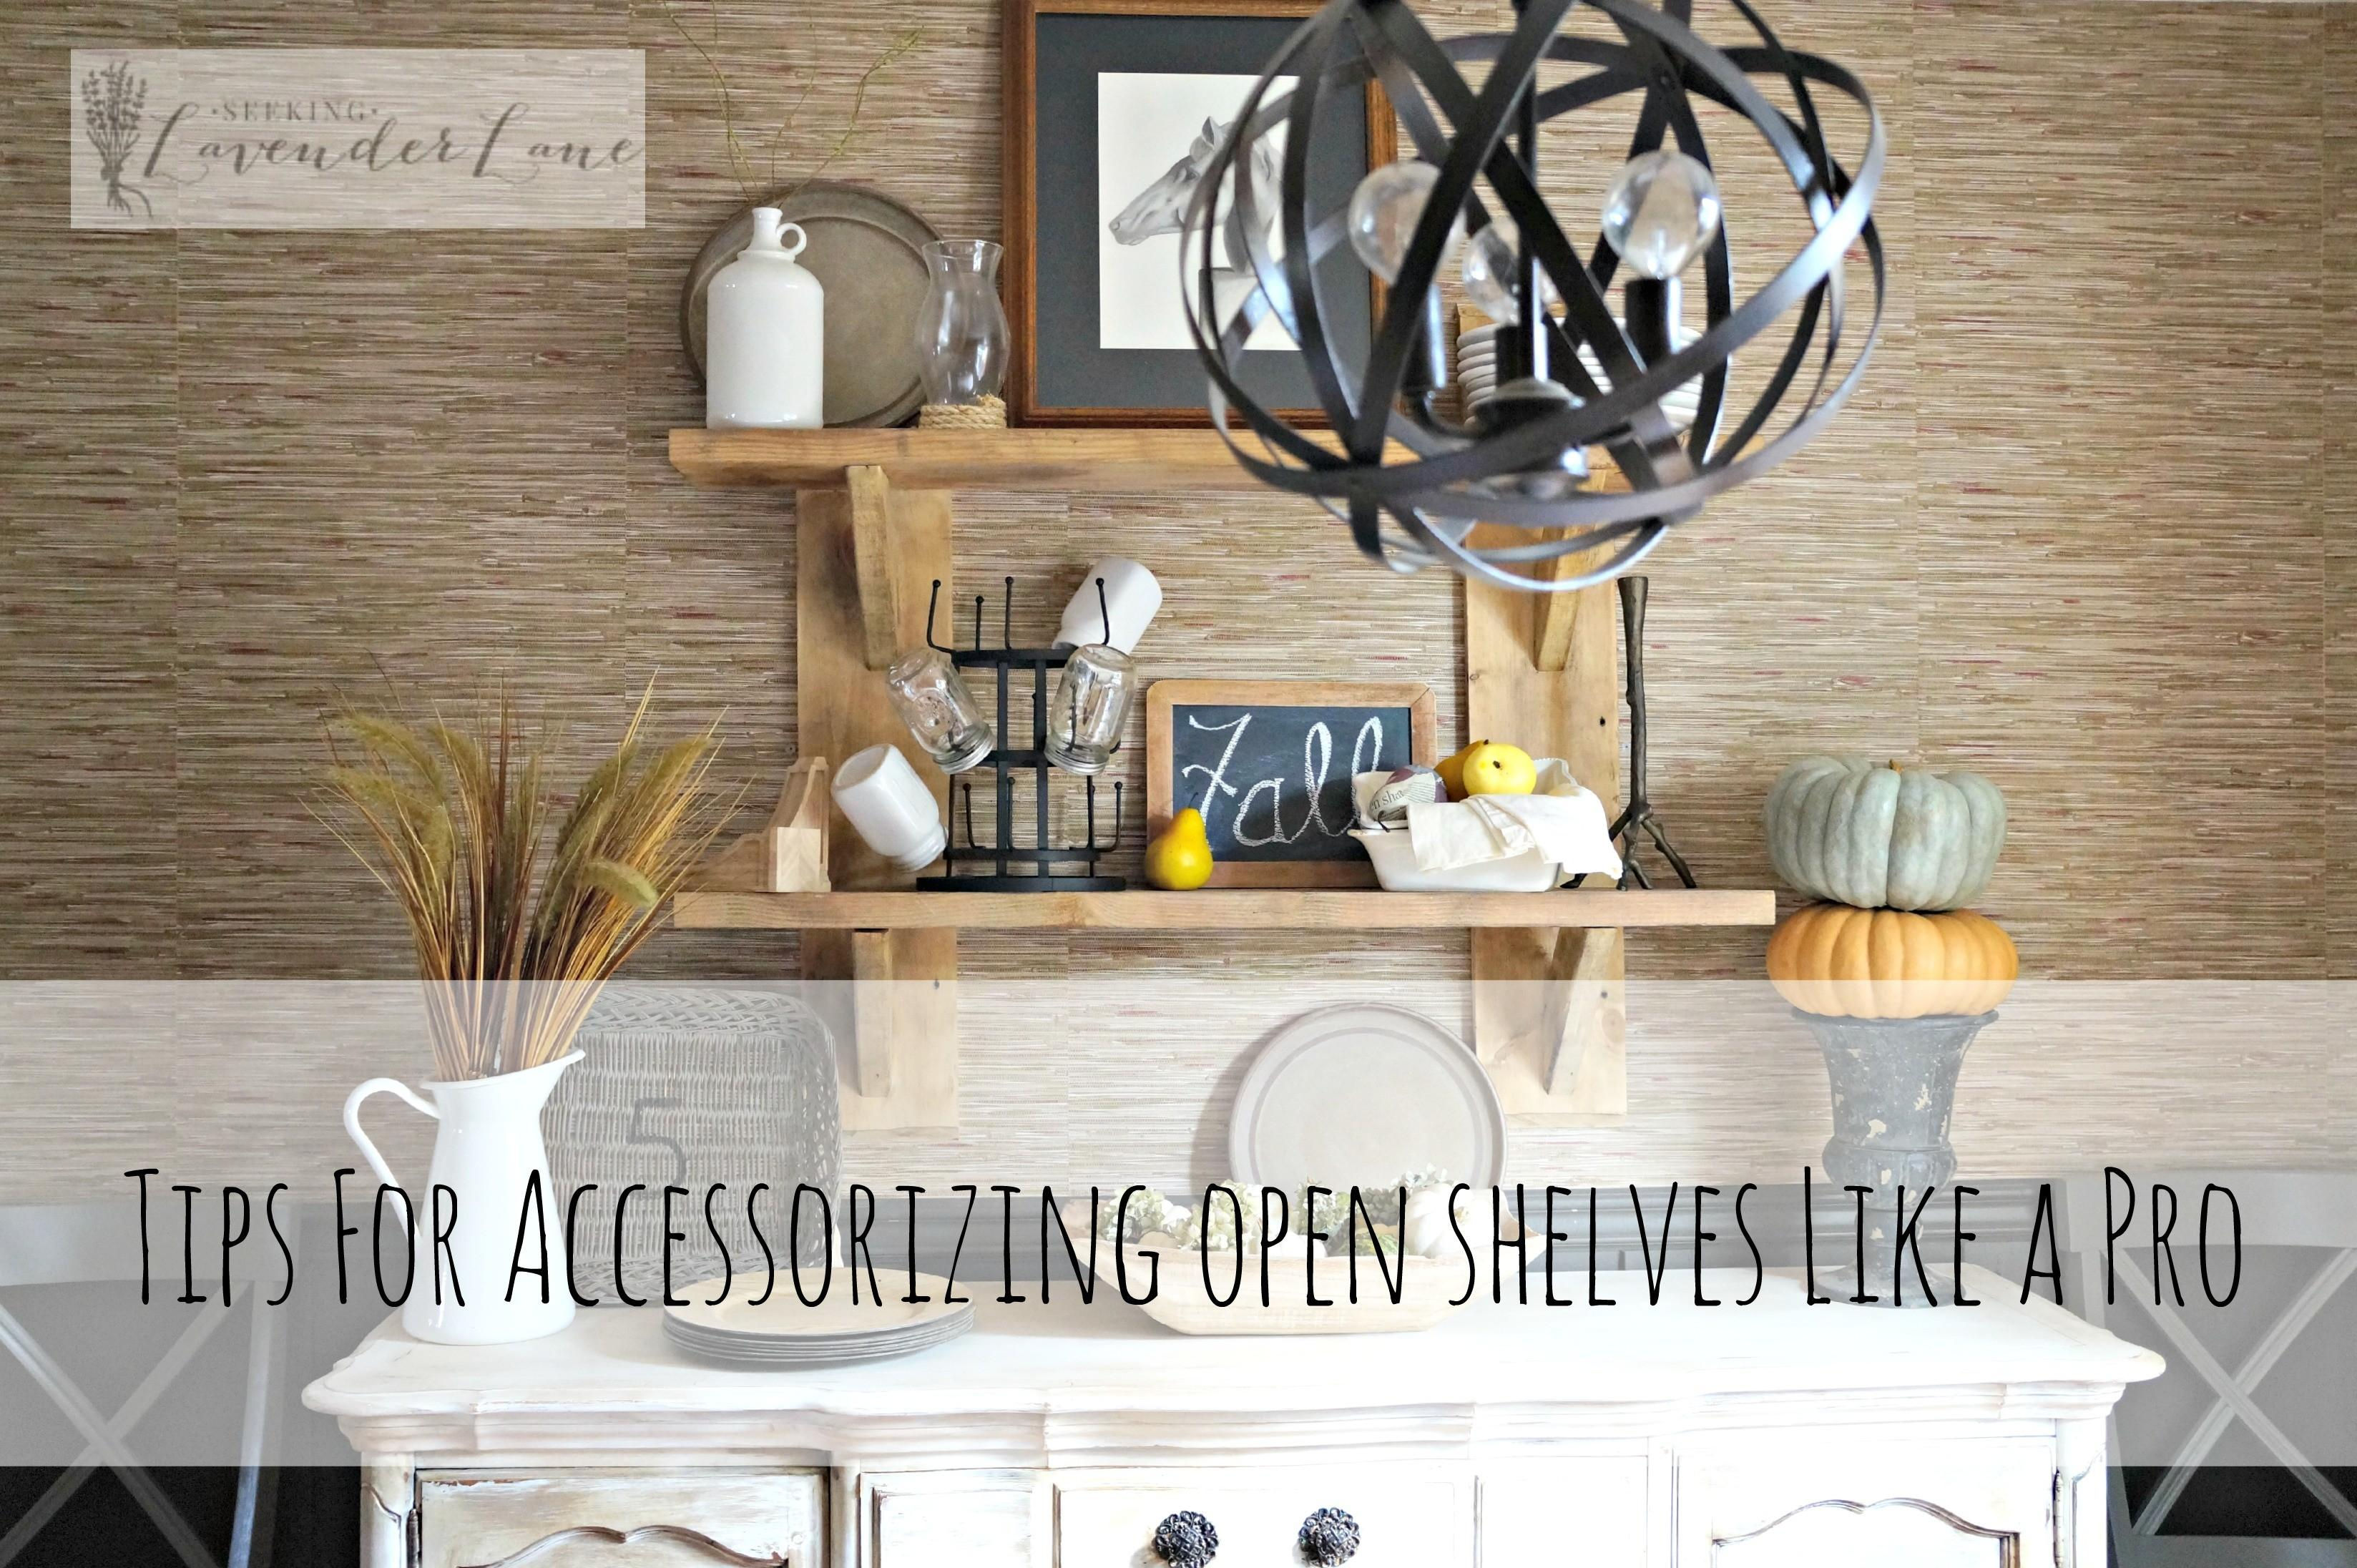 Tips Accessorizing Open Shelves Like Pro Guest Post